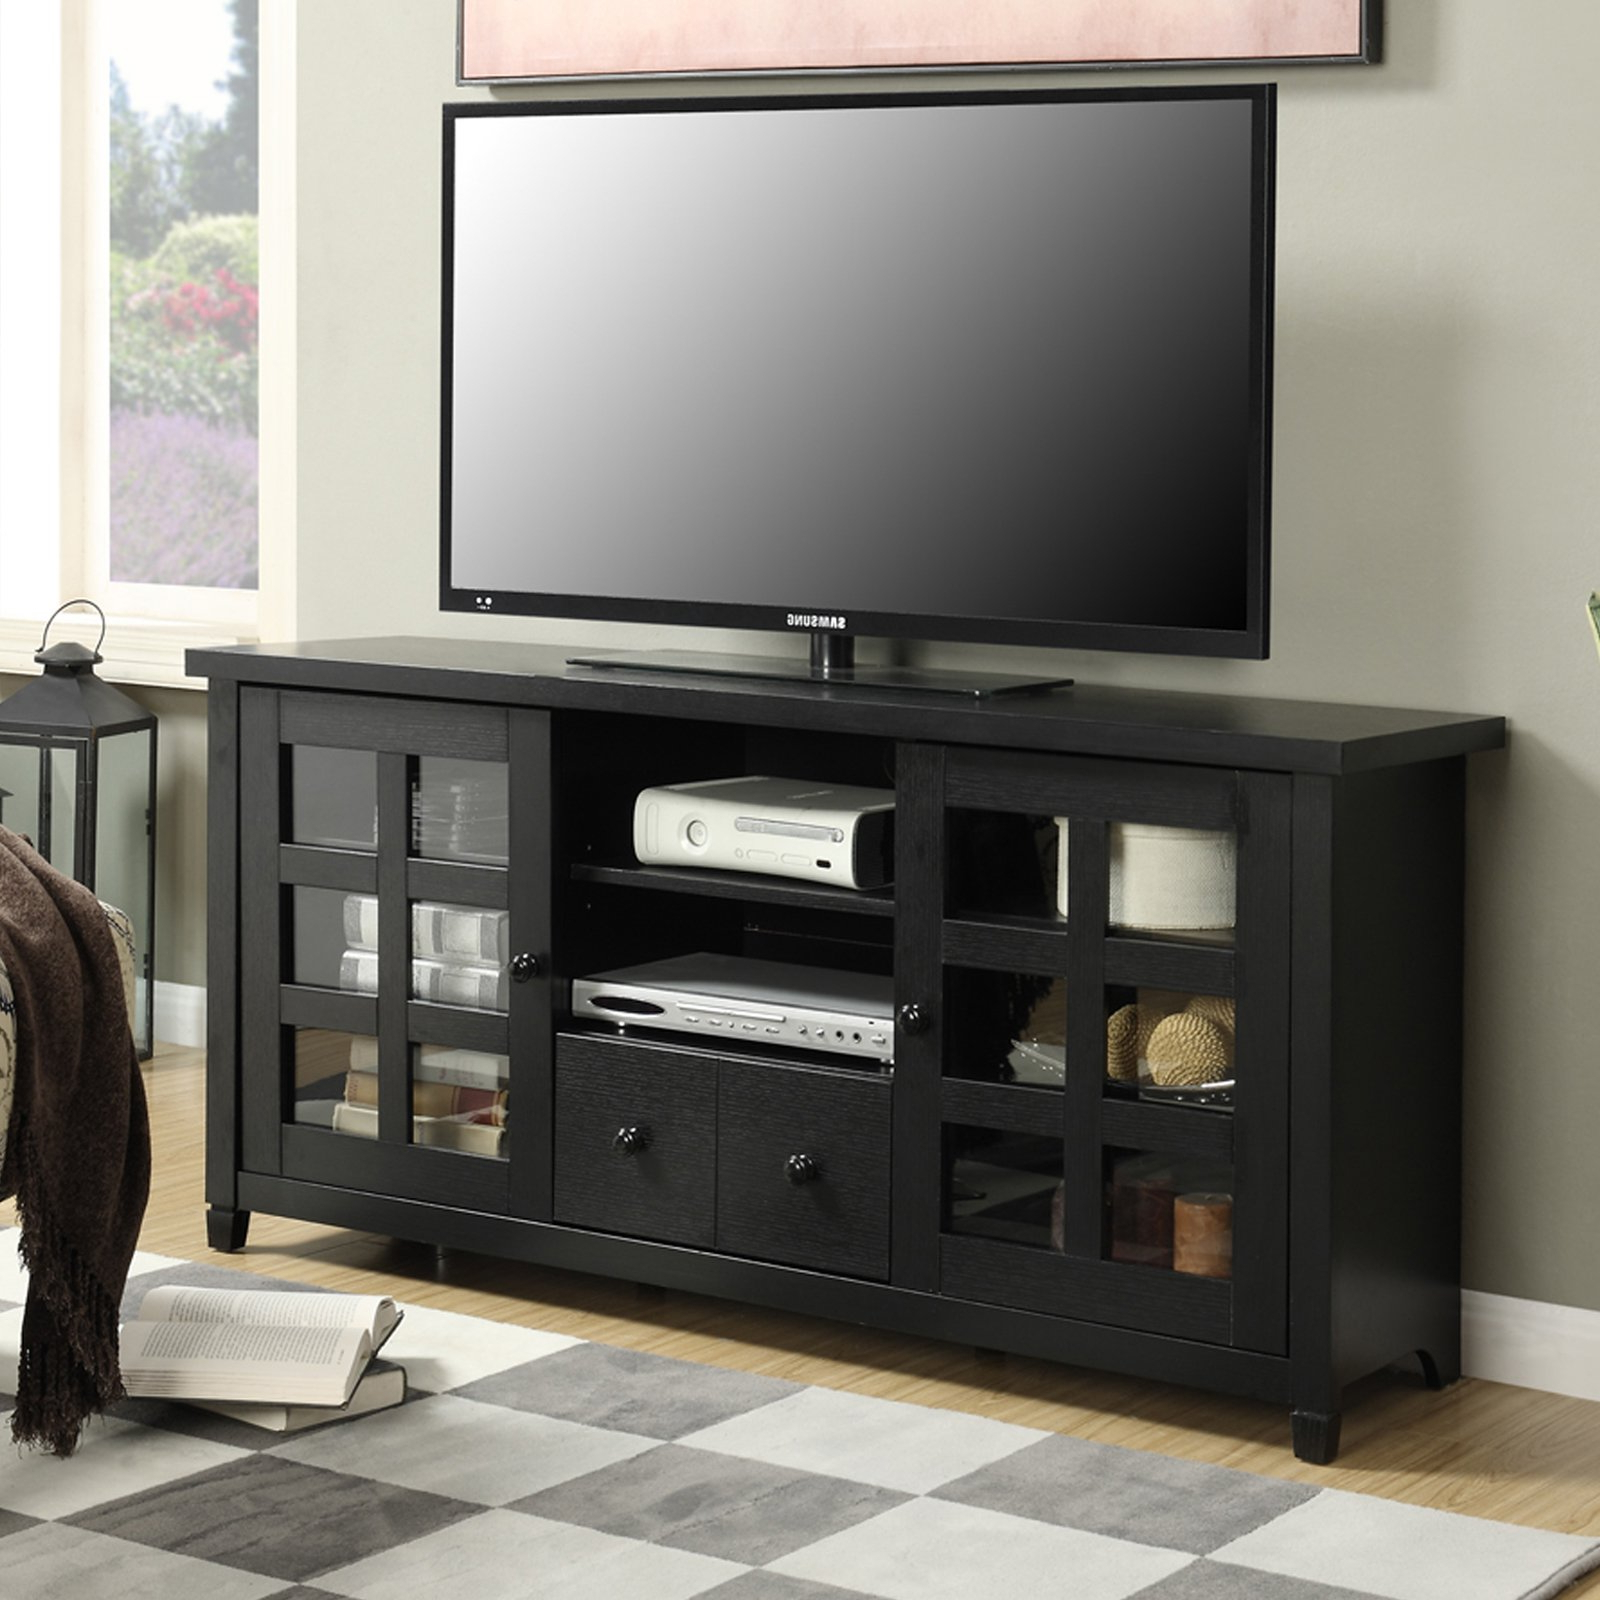 Tv Stands & Entertainment Centers | Hayneedle Regarding Laurent 70 Inch Tv Stands (View 19 of 20)